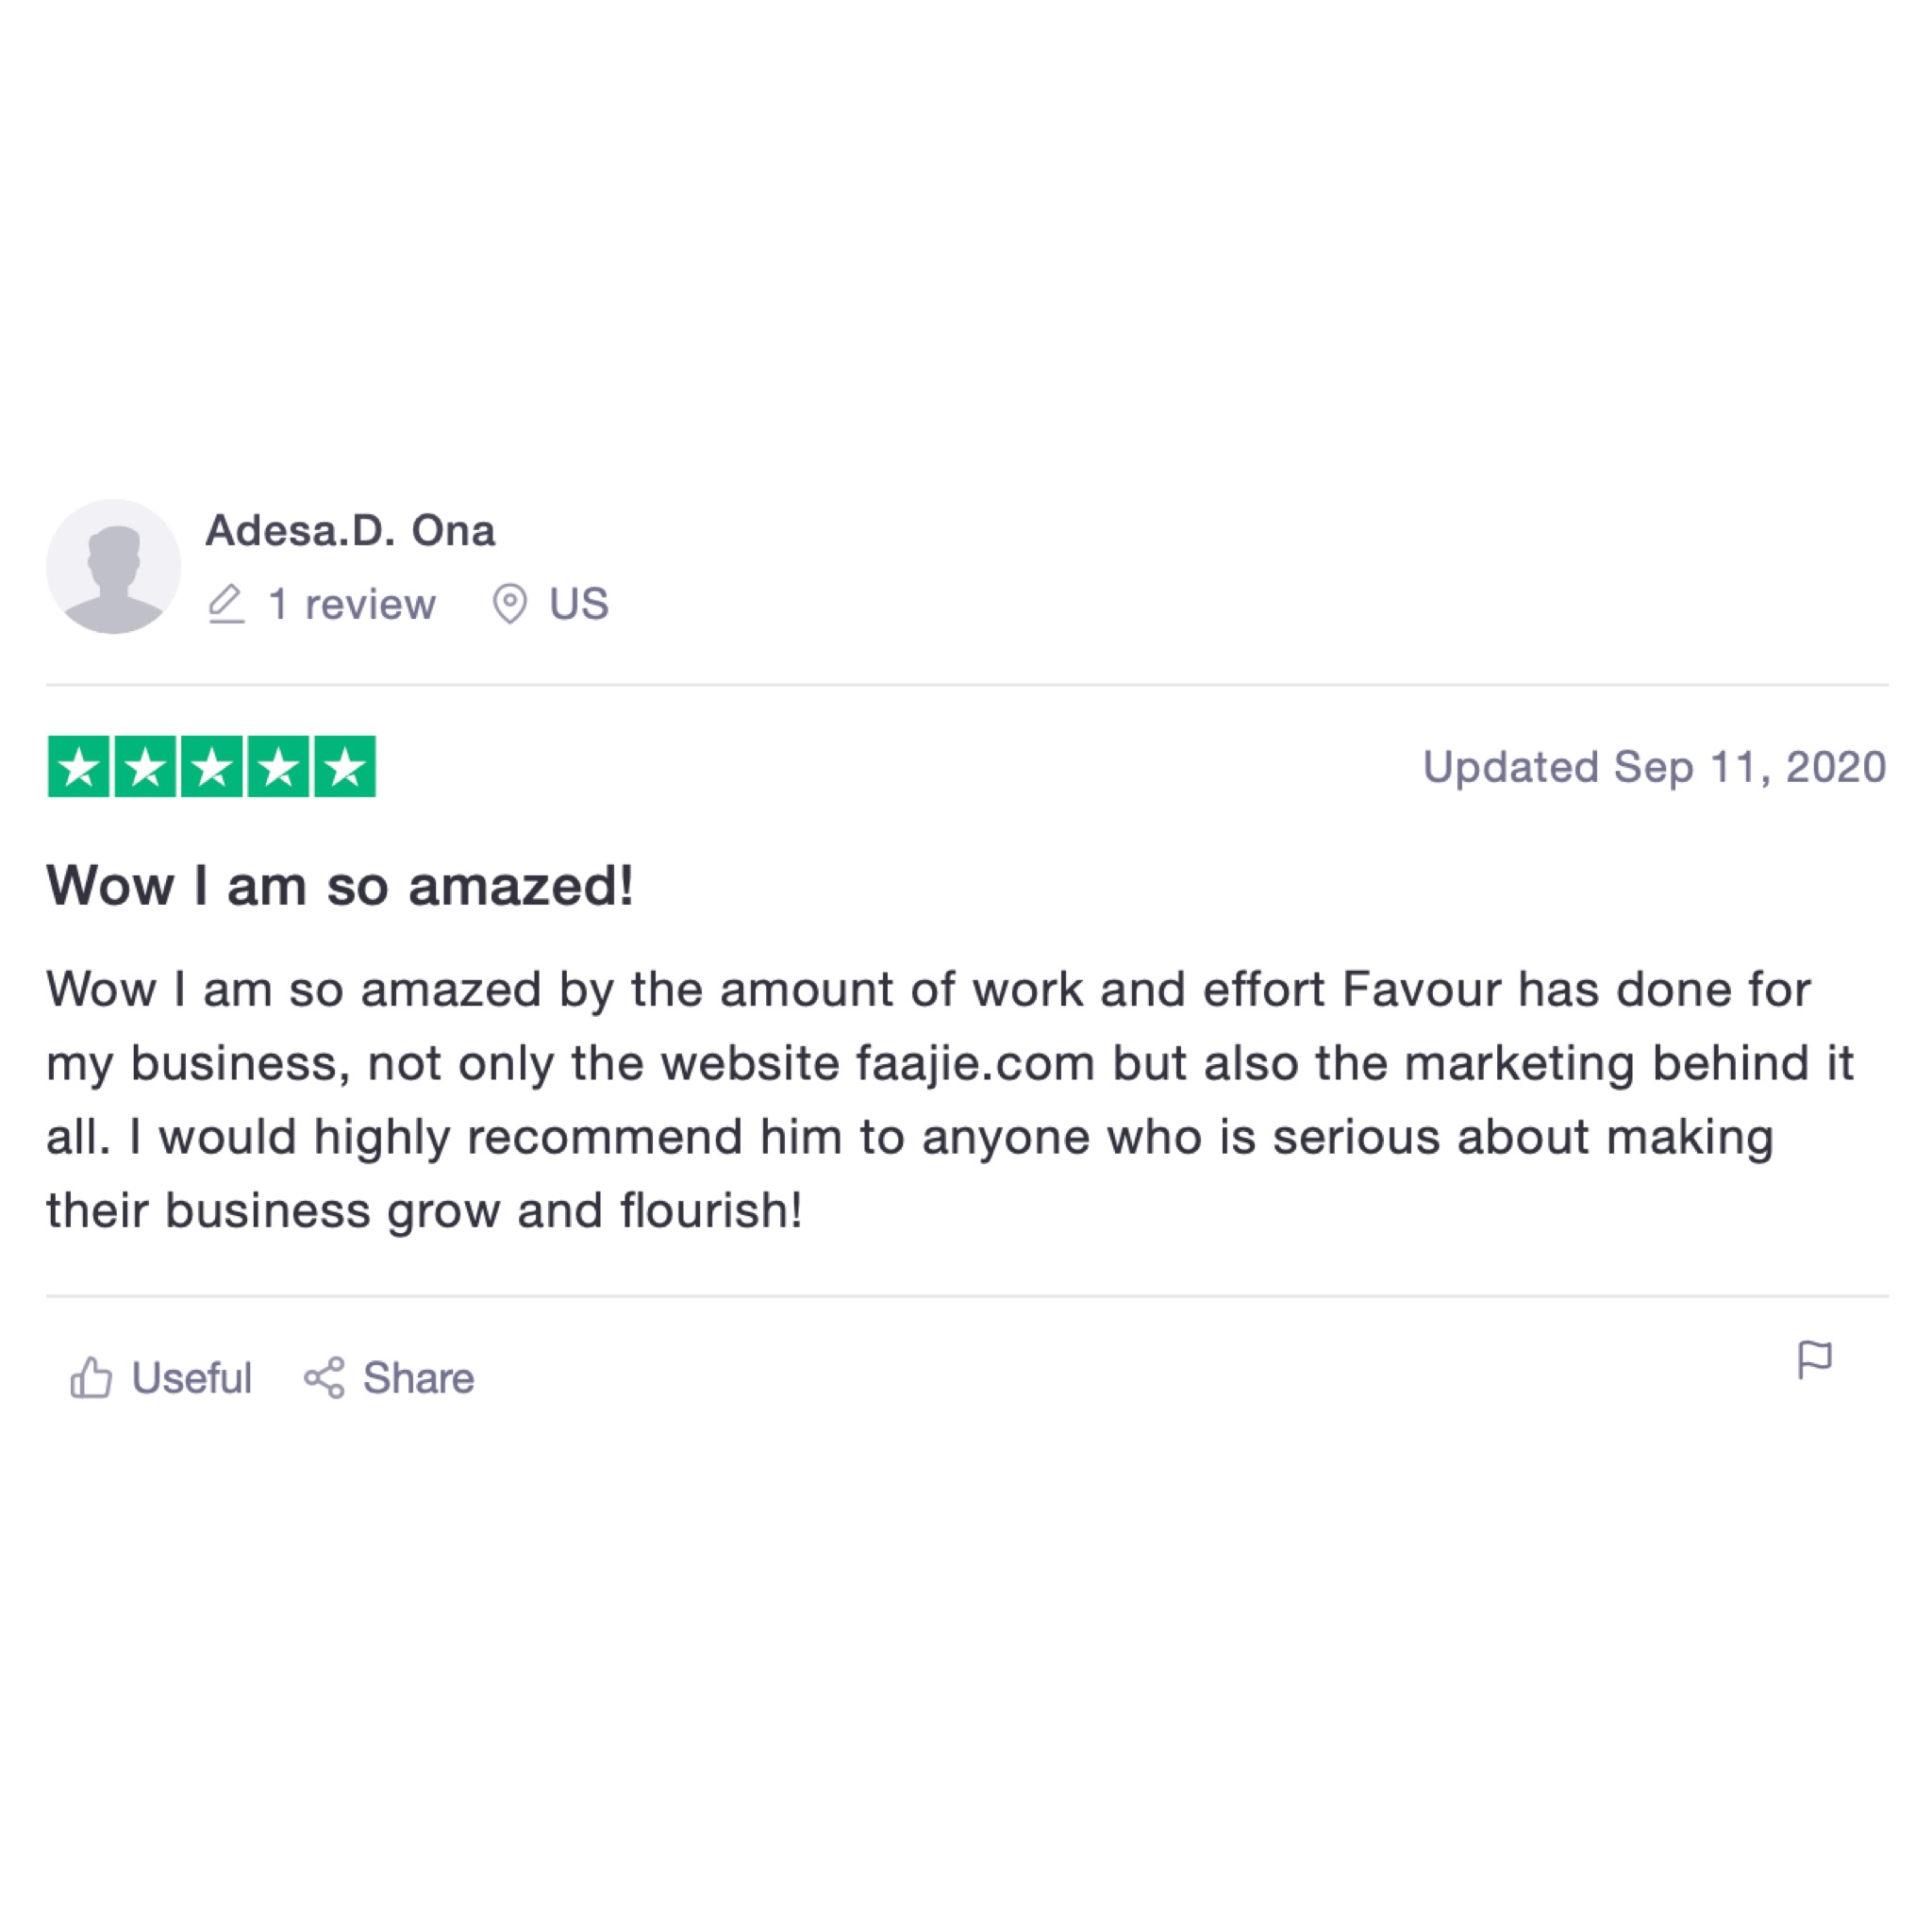 Adesa D Ona - FAAJIE.COM Founder Trustpilot review for Favour Obasi-ike